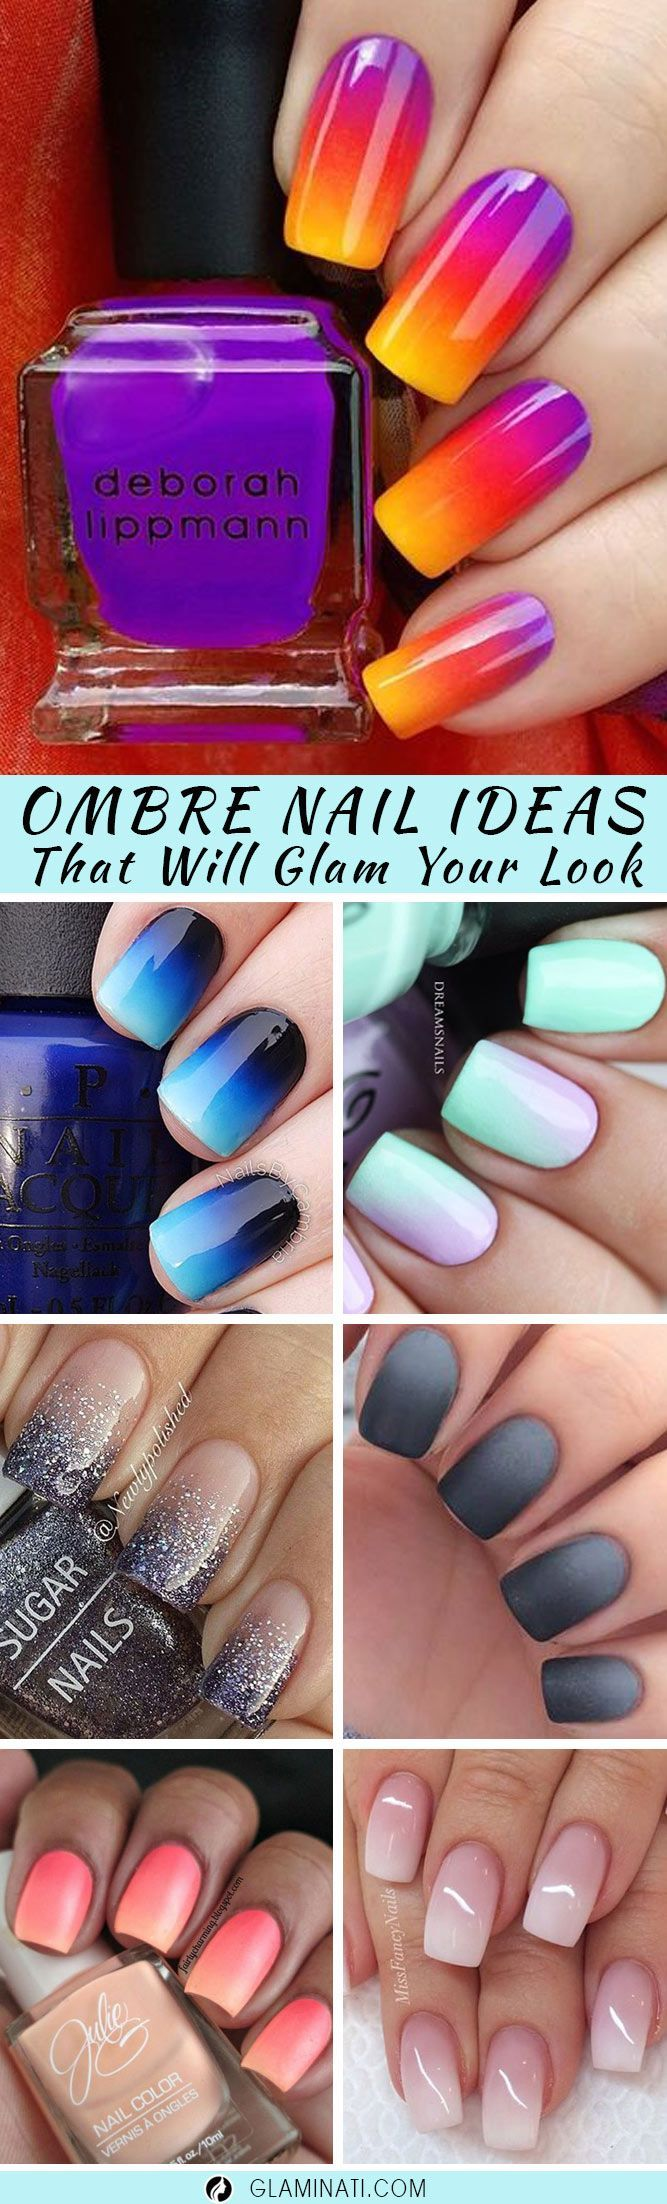 45 Glam Ideen für Ombre Nails Plus Tutorial – Nails